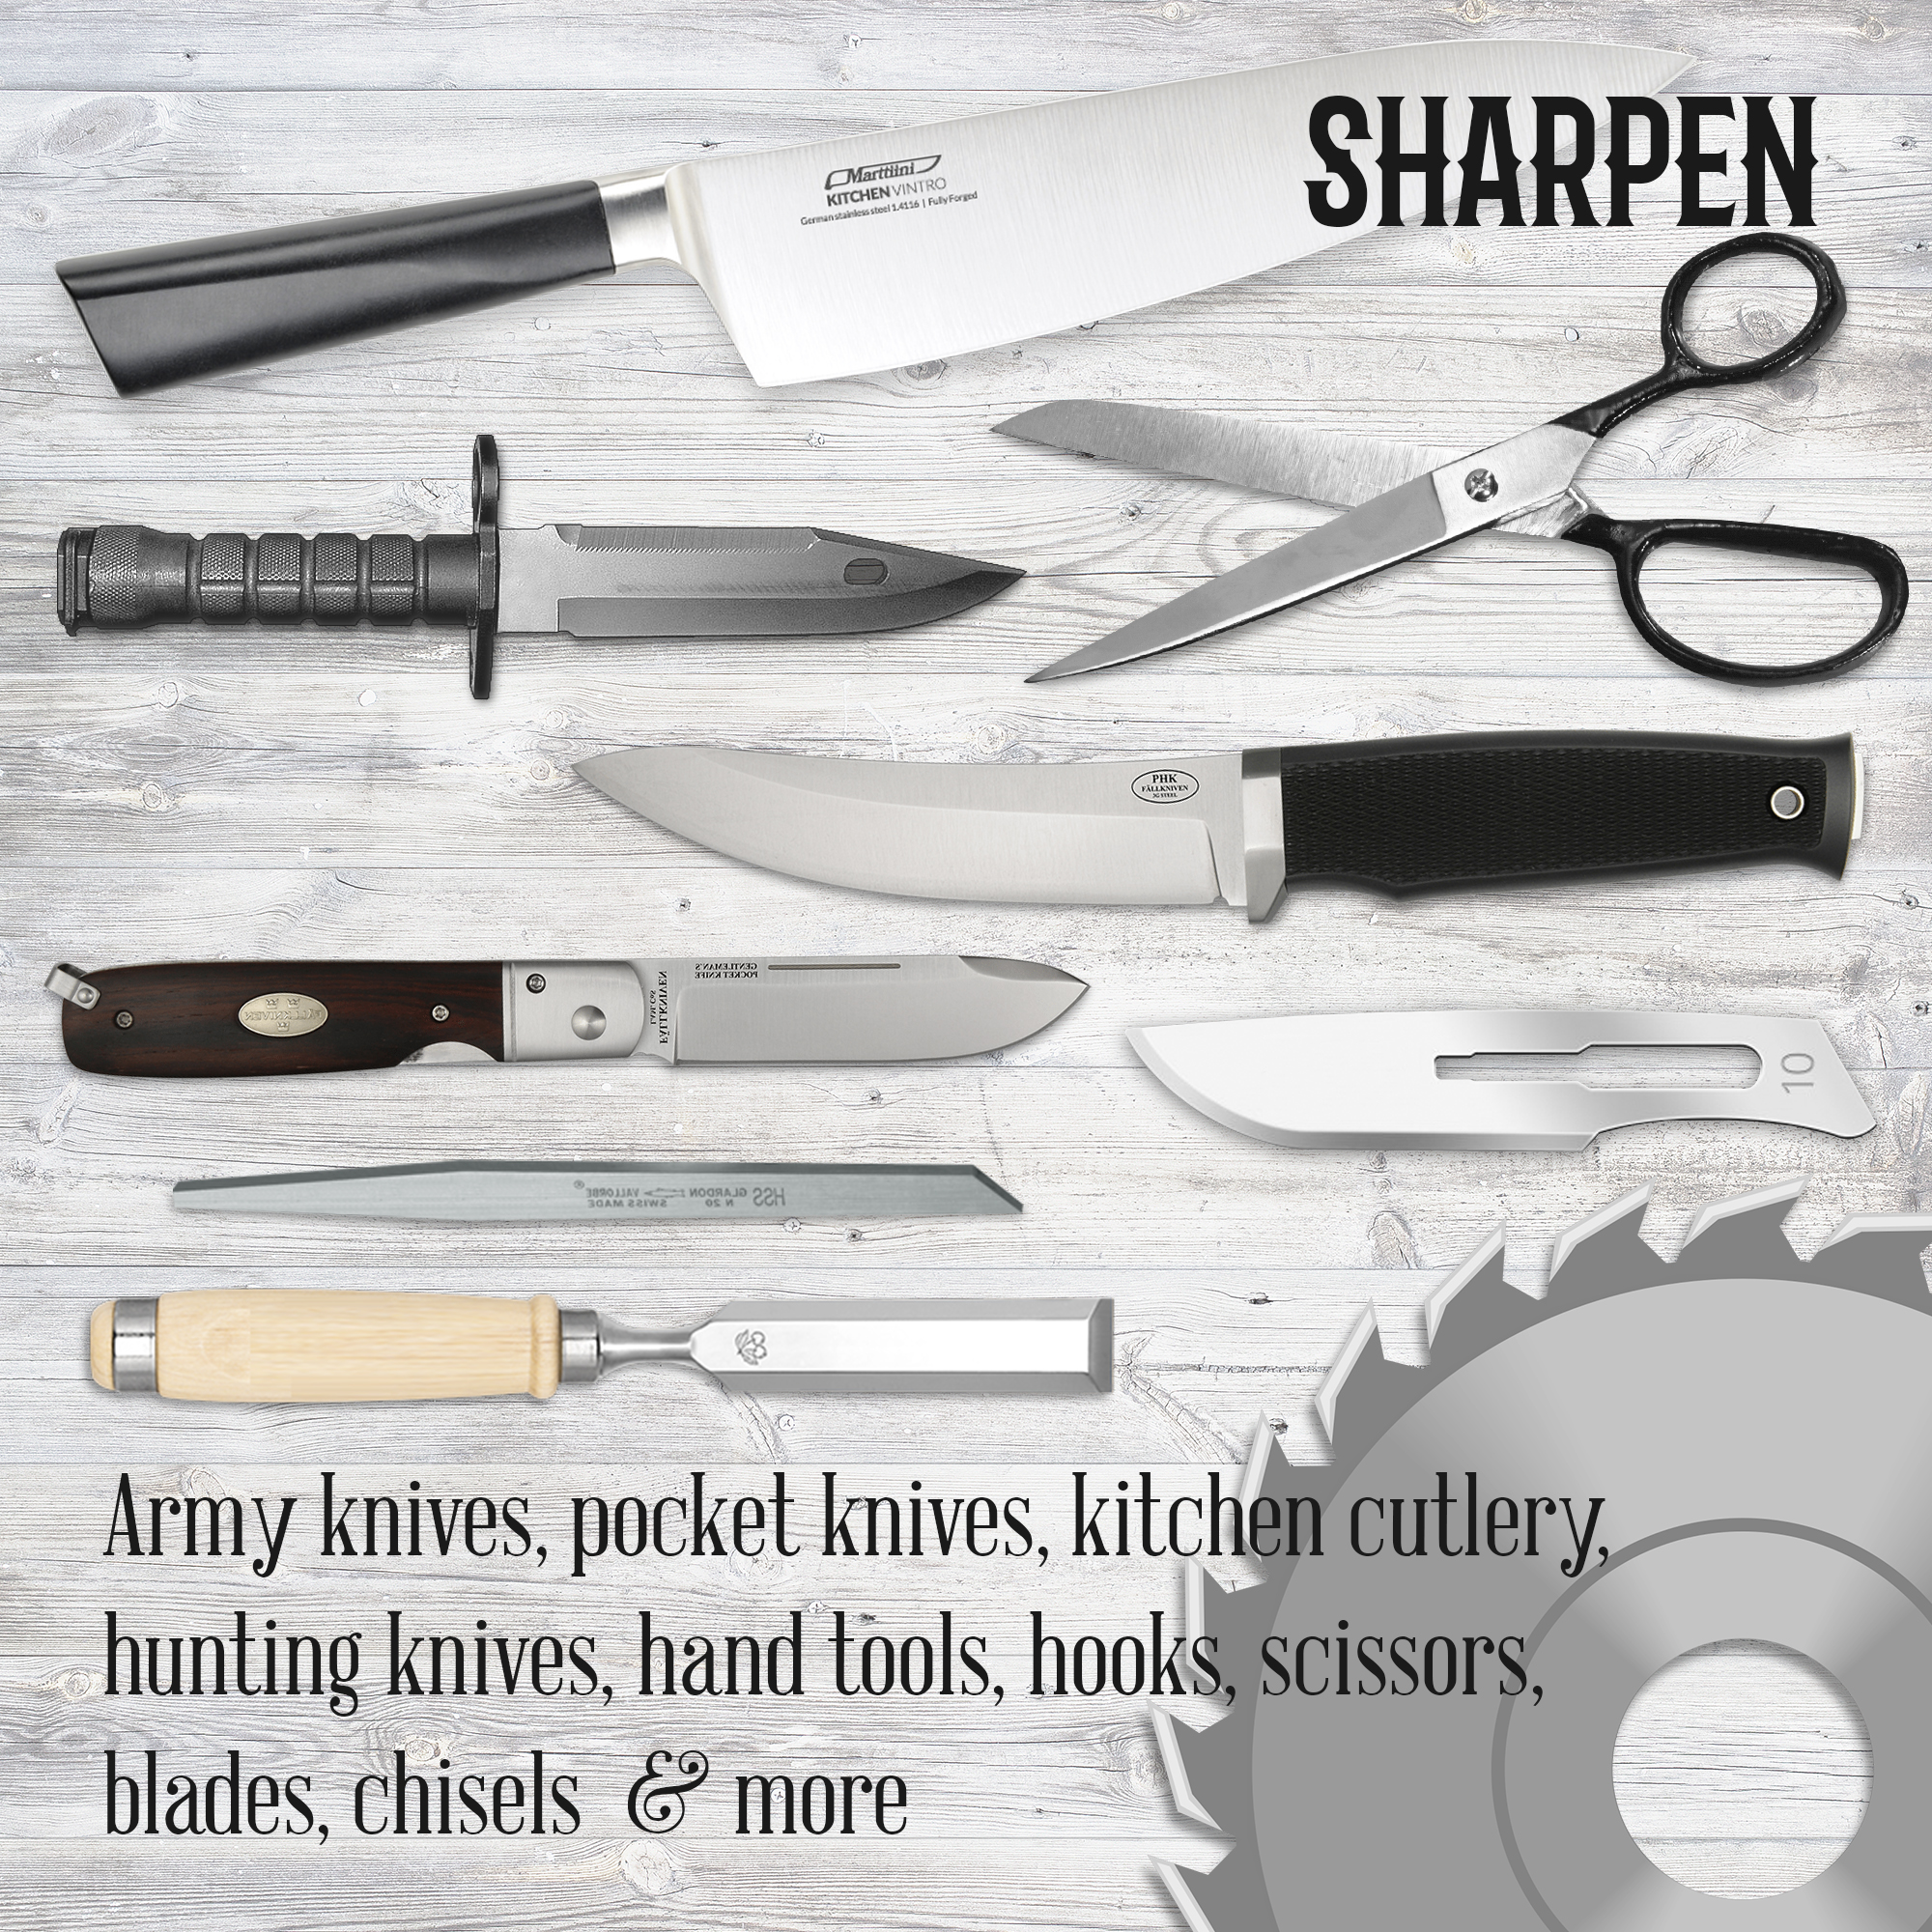 Knife-Straight-Blade-Manual-Sharpener-Tool-Dual-Grit-Sharpening-Stone thumbnail 19